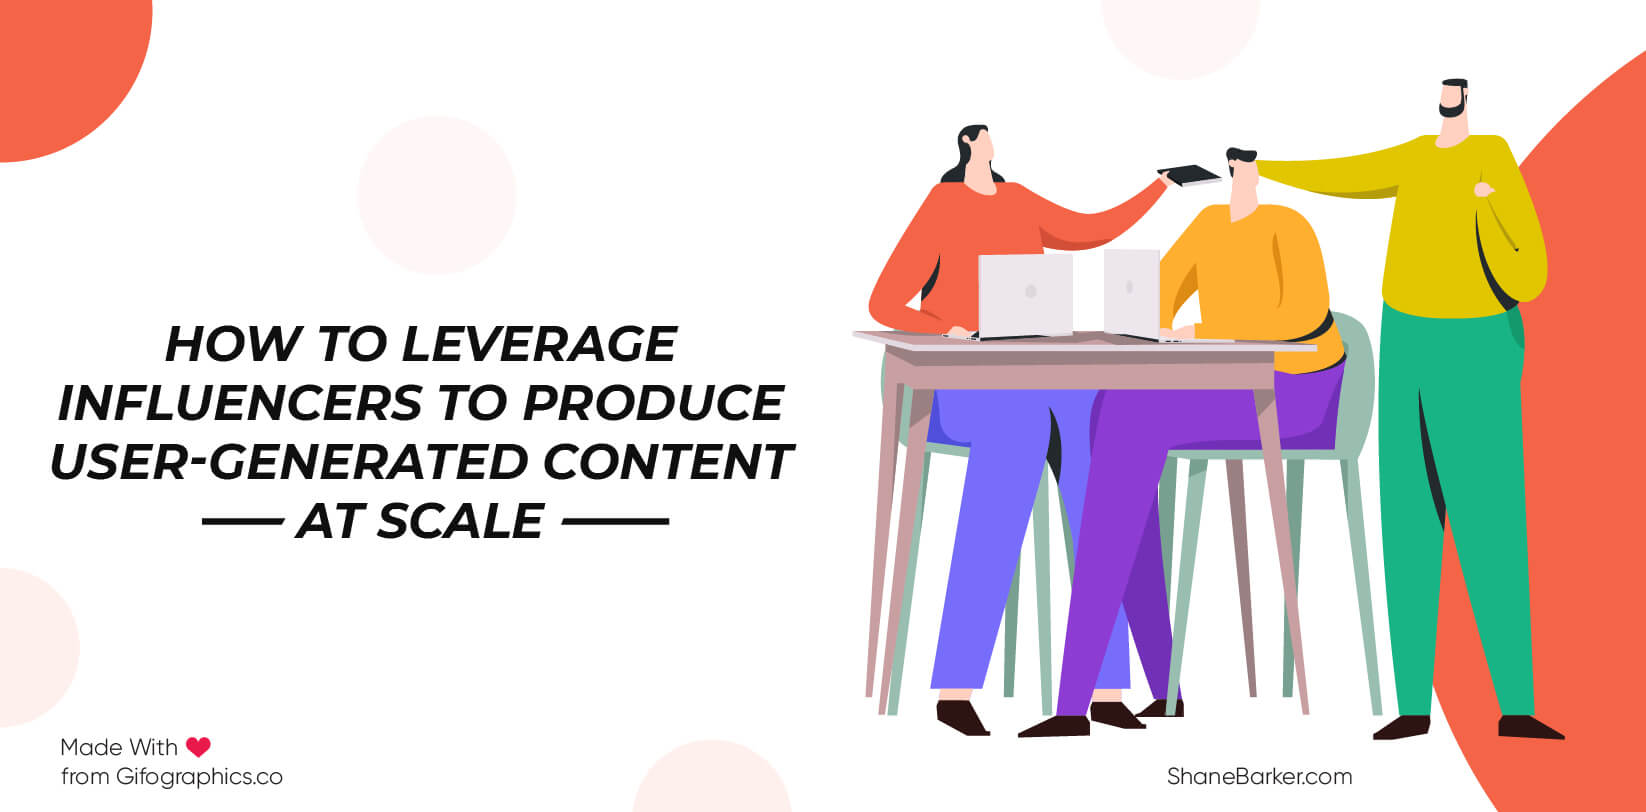 How to Leverage Influencers to Produce User-Generated Content at Scale